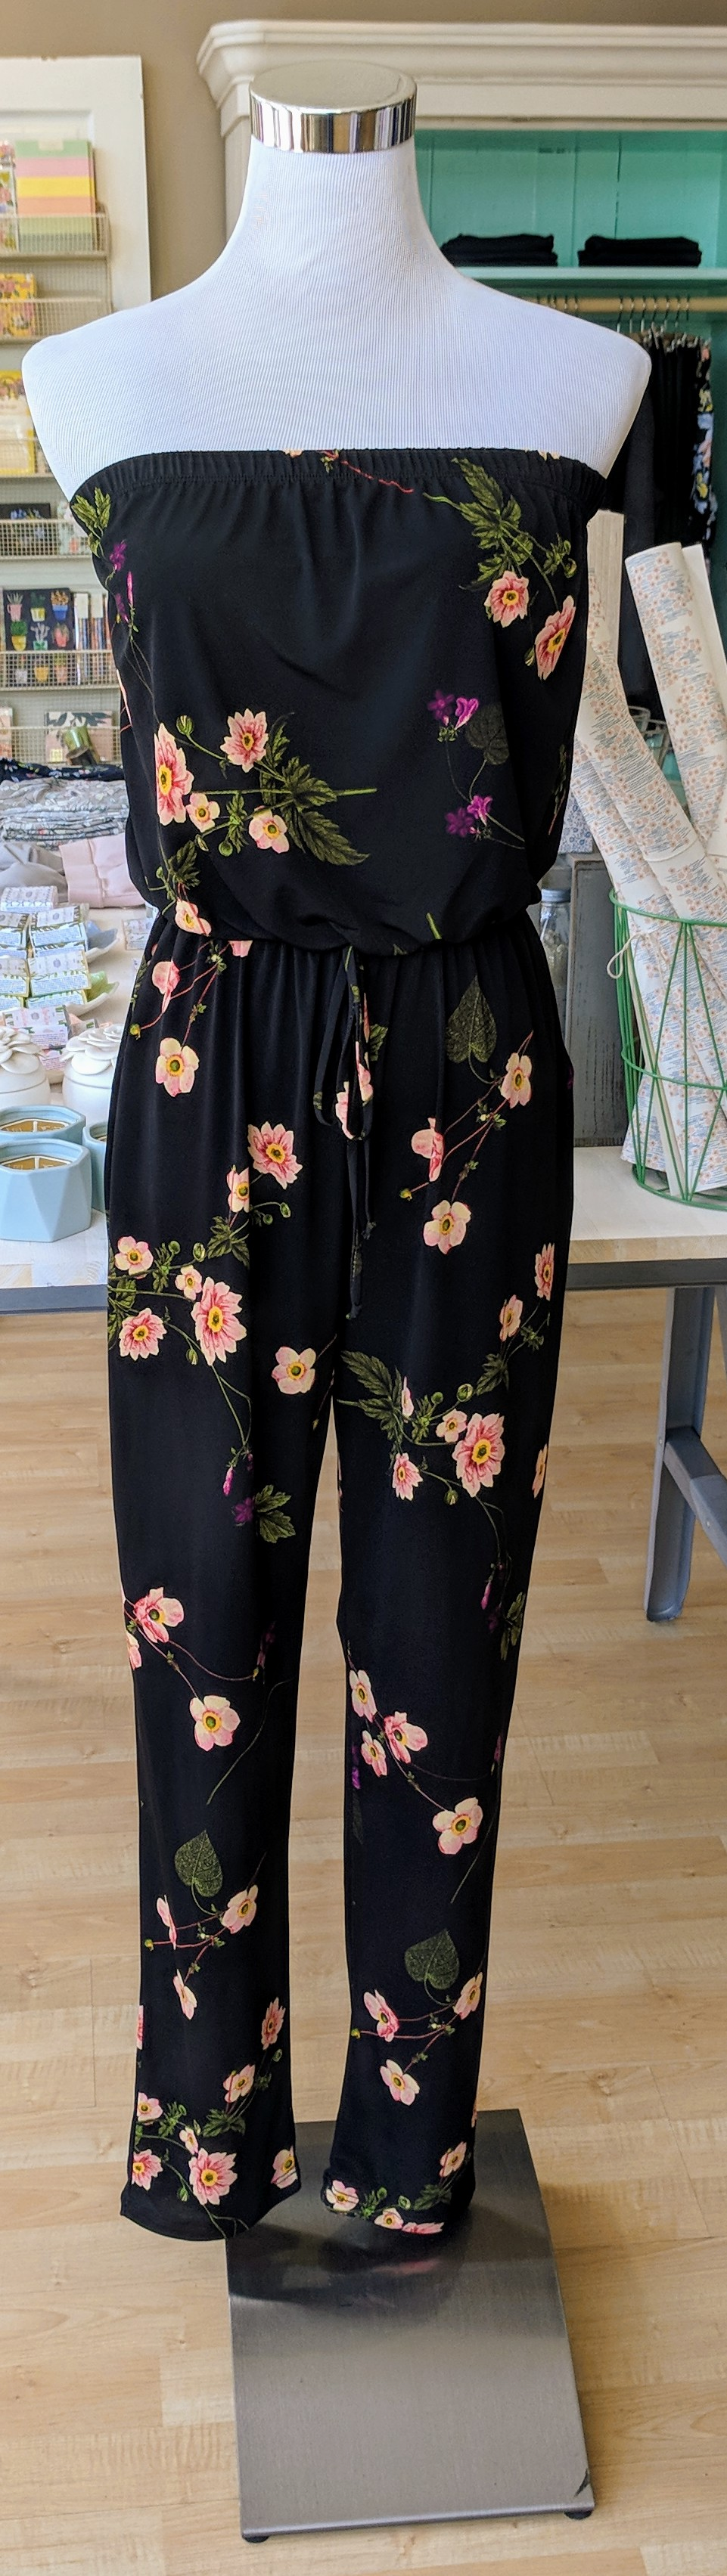 Black floral strapless jumpsuit with pockets.